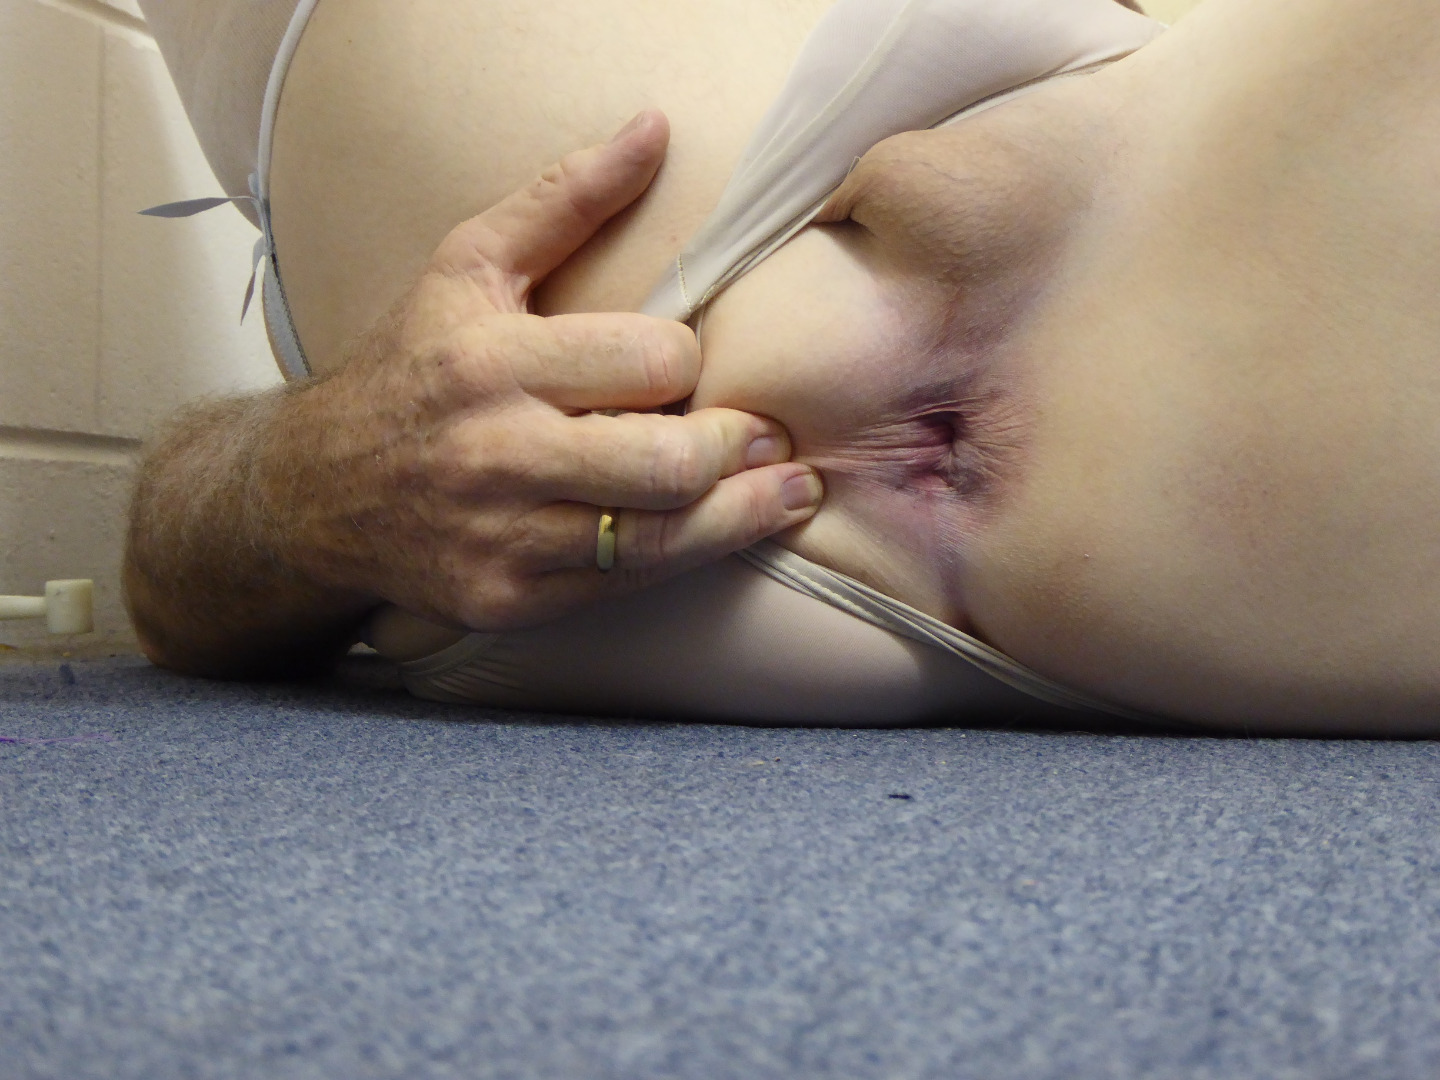 plumper sex tube videos free chubby belly hanging porn